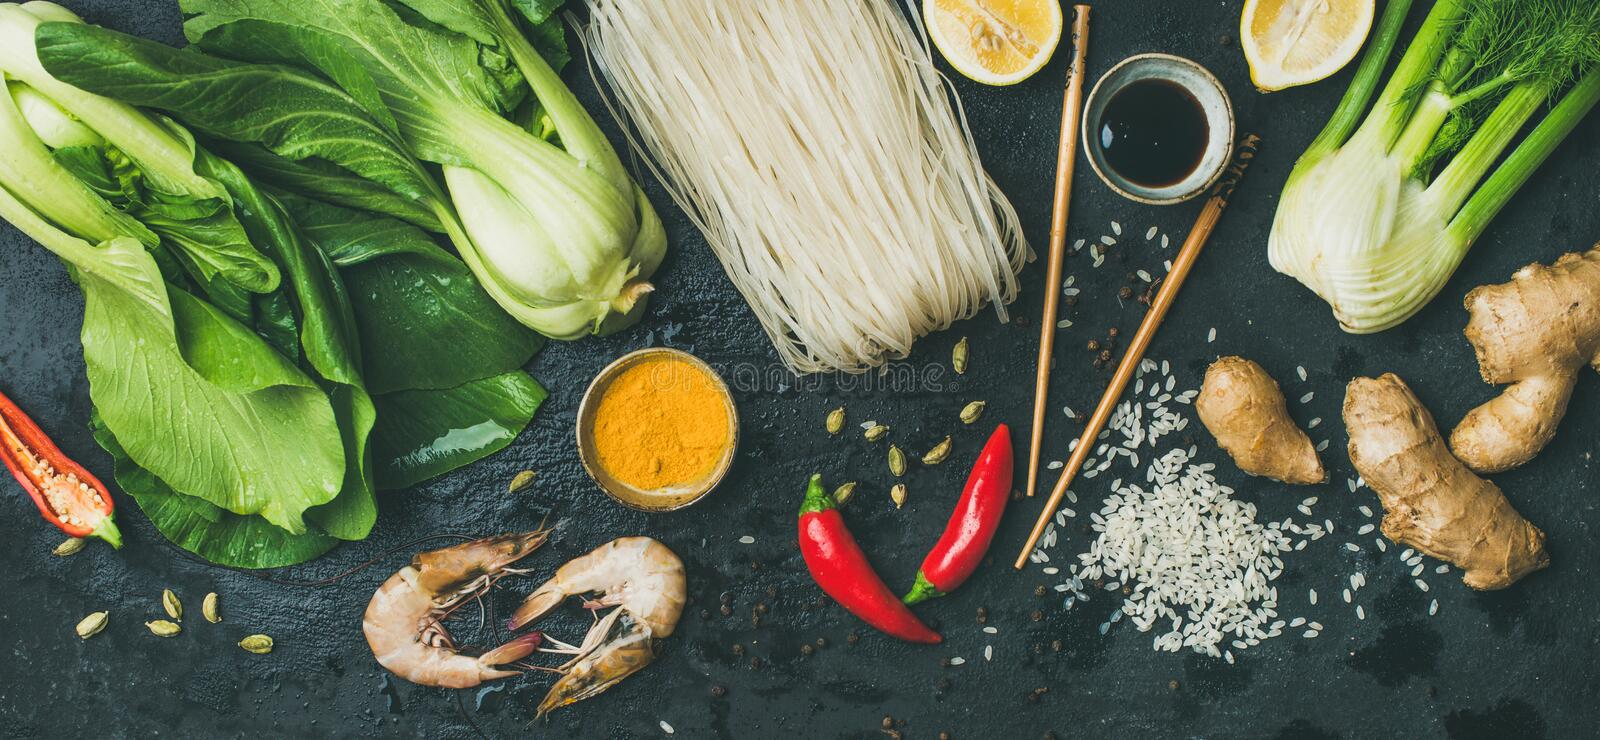 Asian cuisine ingredients over dark slate stone background, top view. Vegetables, spices, shrimp, rice, sauces for cooking vietnamese, thai or chinese food royalty free stock photos